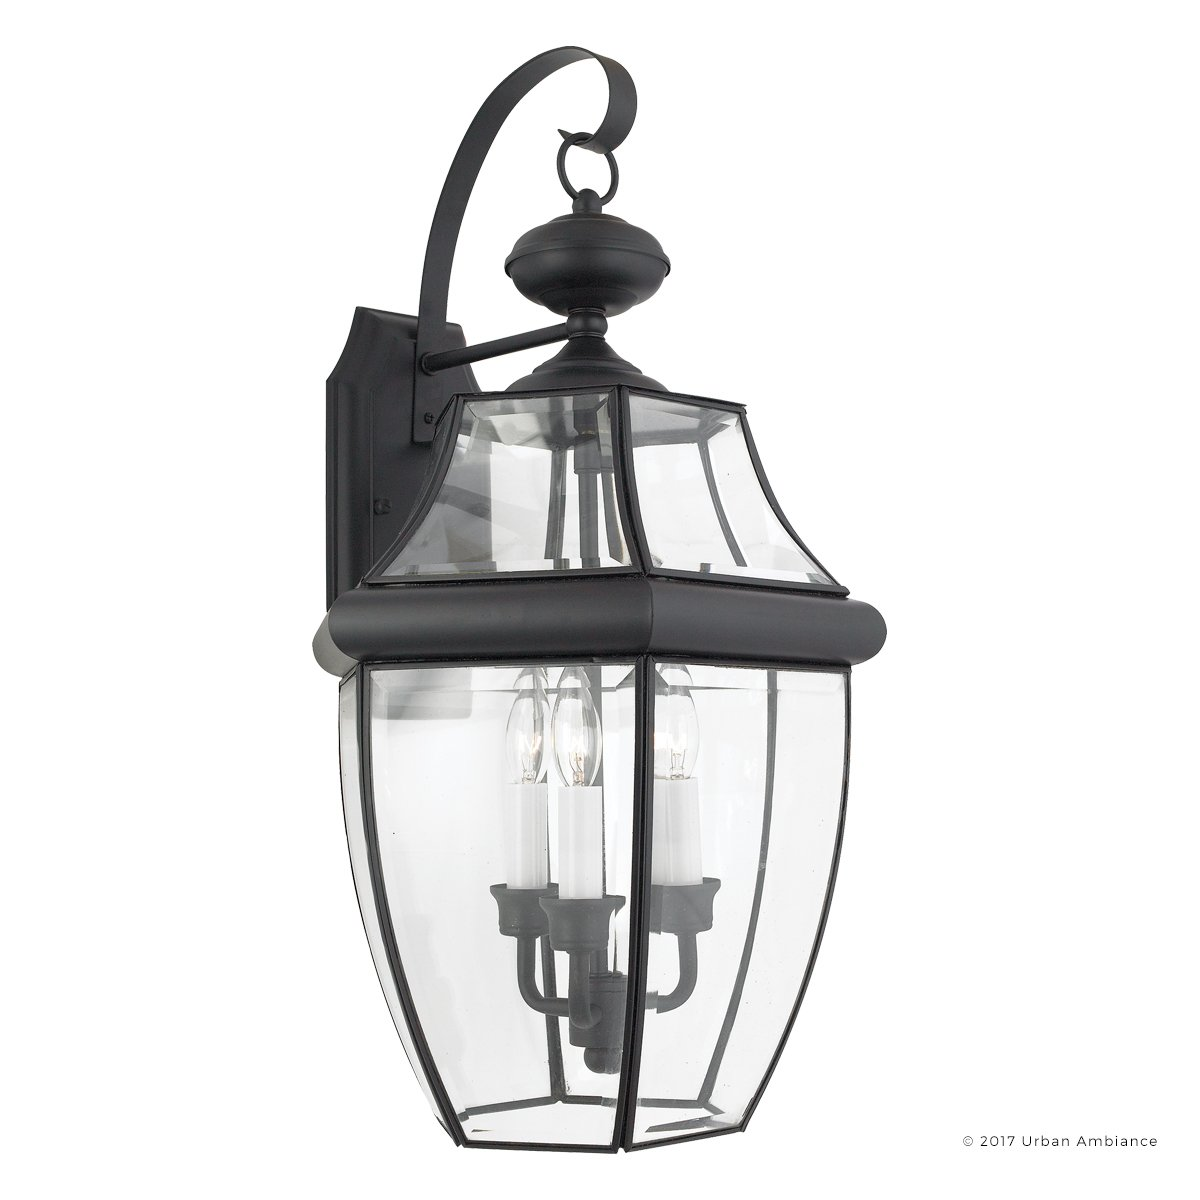 Luxury Colonial Outdoor Wall Light, Large Size: 22.5''H x 12.25''W, with Tudor Style Elements, Versatile Design, High-End Black Silk Finish and Beveled Glass, UQL1146 by Urban Ambiance by Urban Ambiance